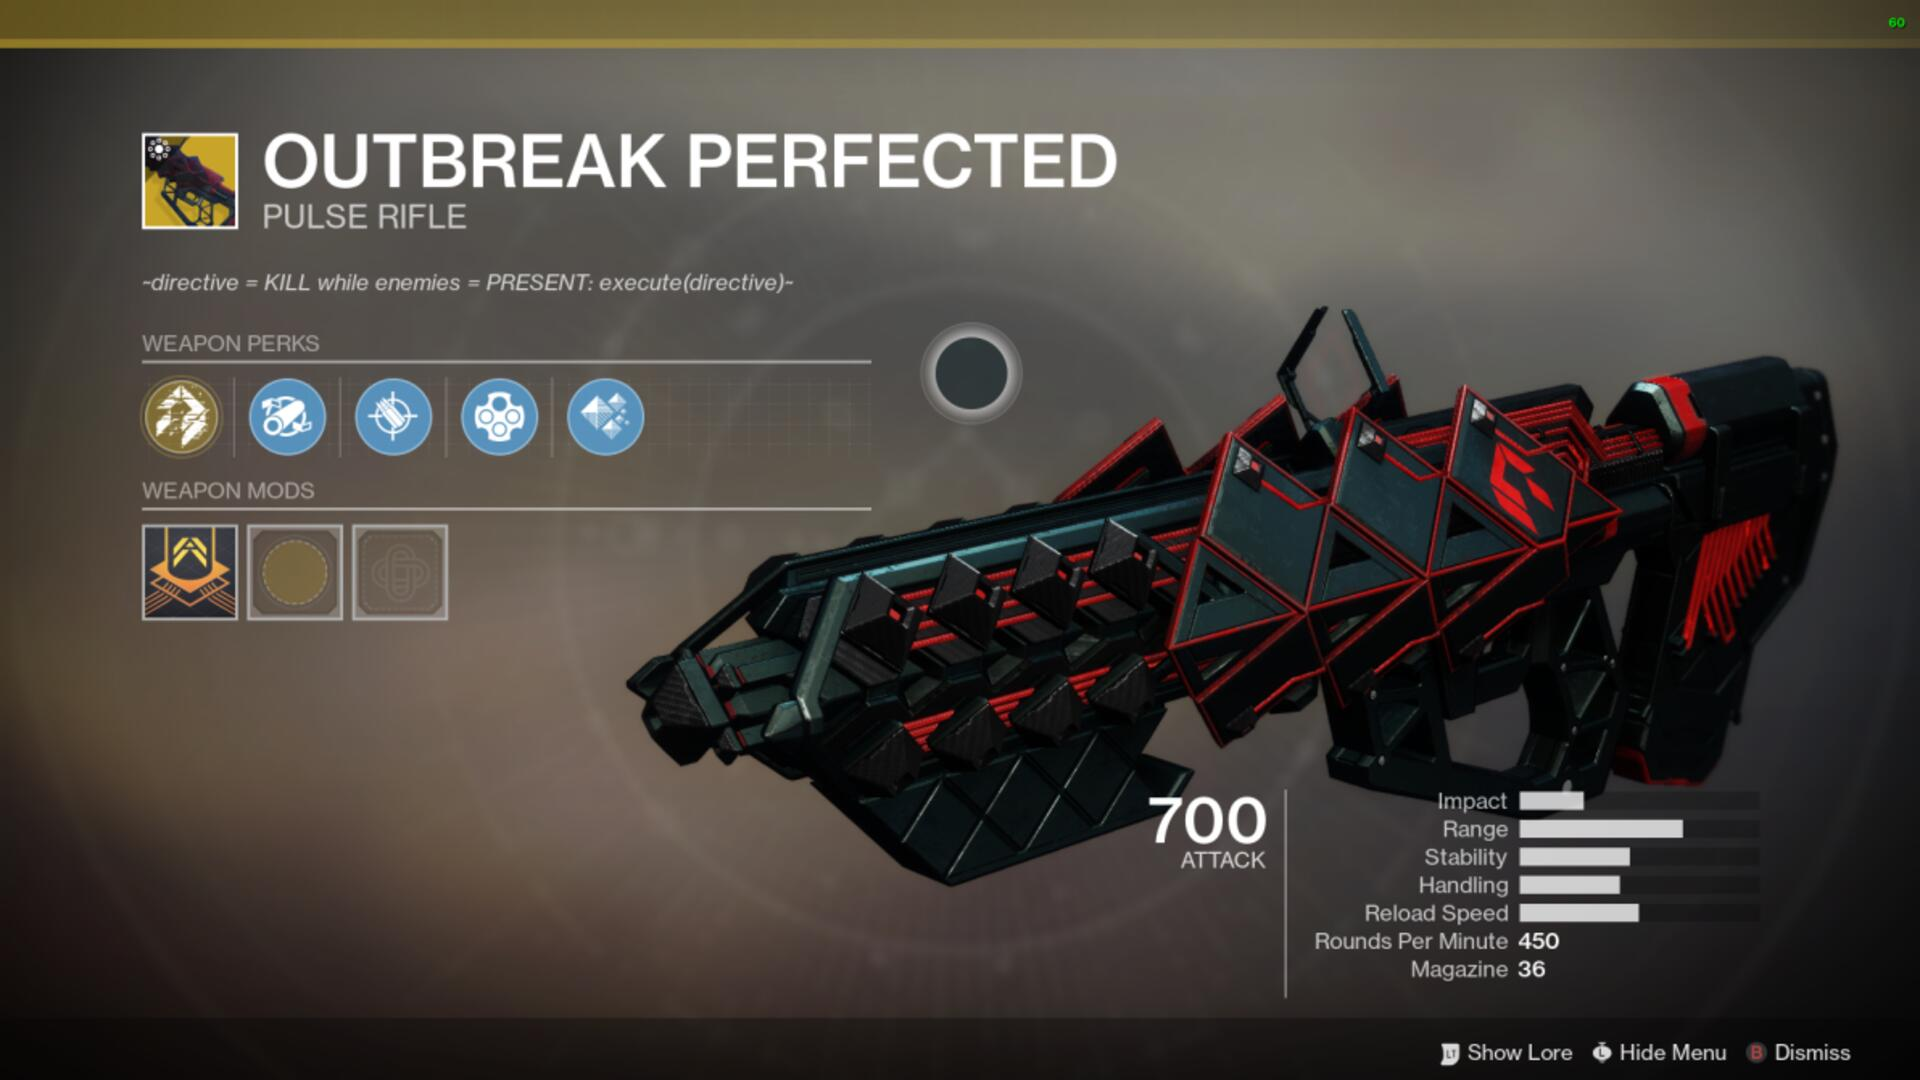 Destiny 2 Outbreak Perfected Exotic - How to Complete the Fallen Transponder Quest in Destiny 2